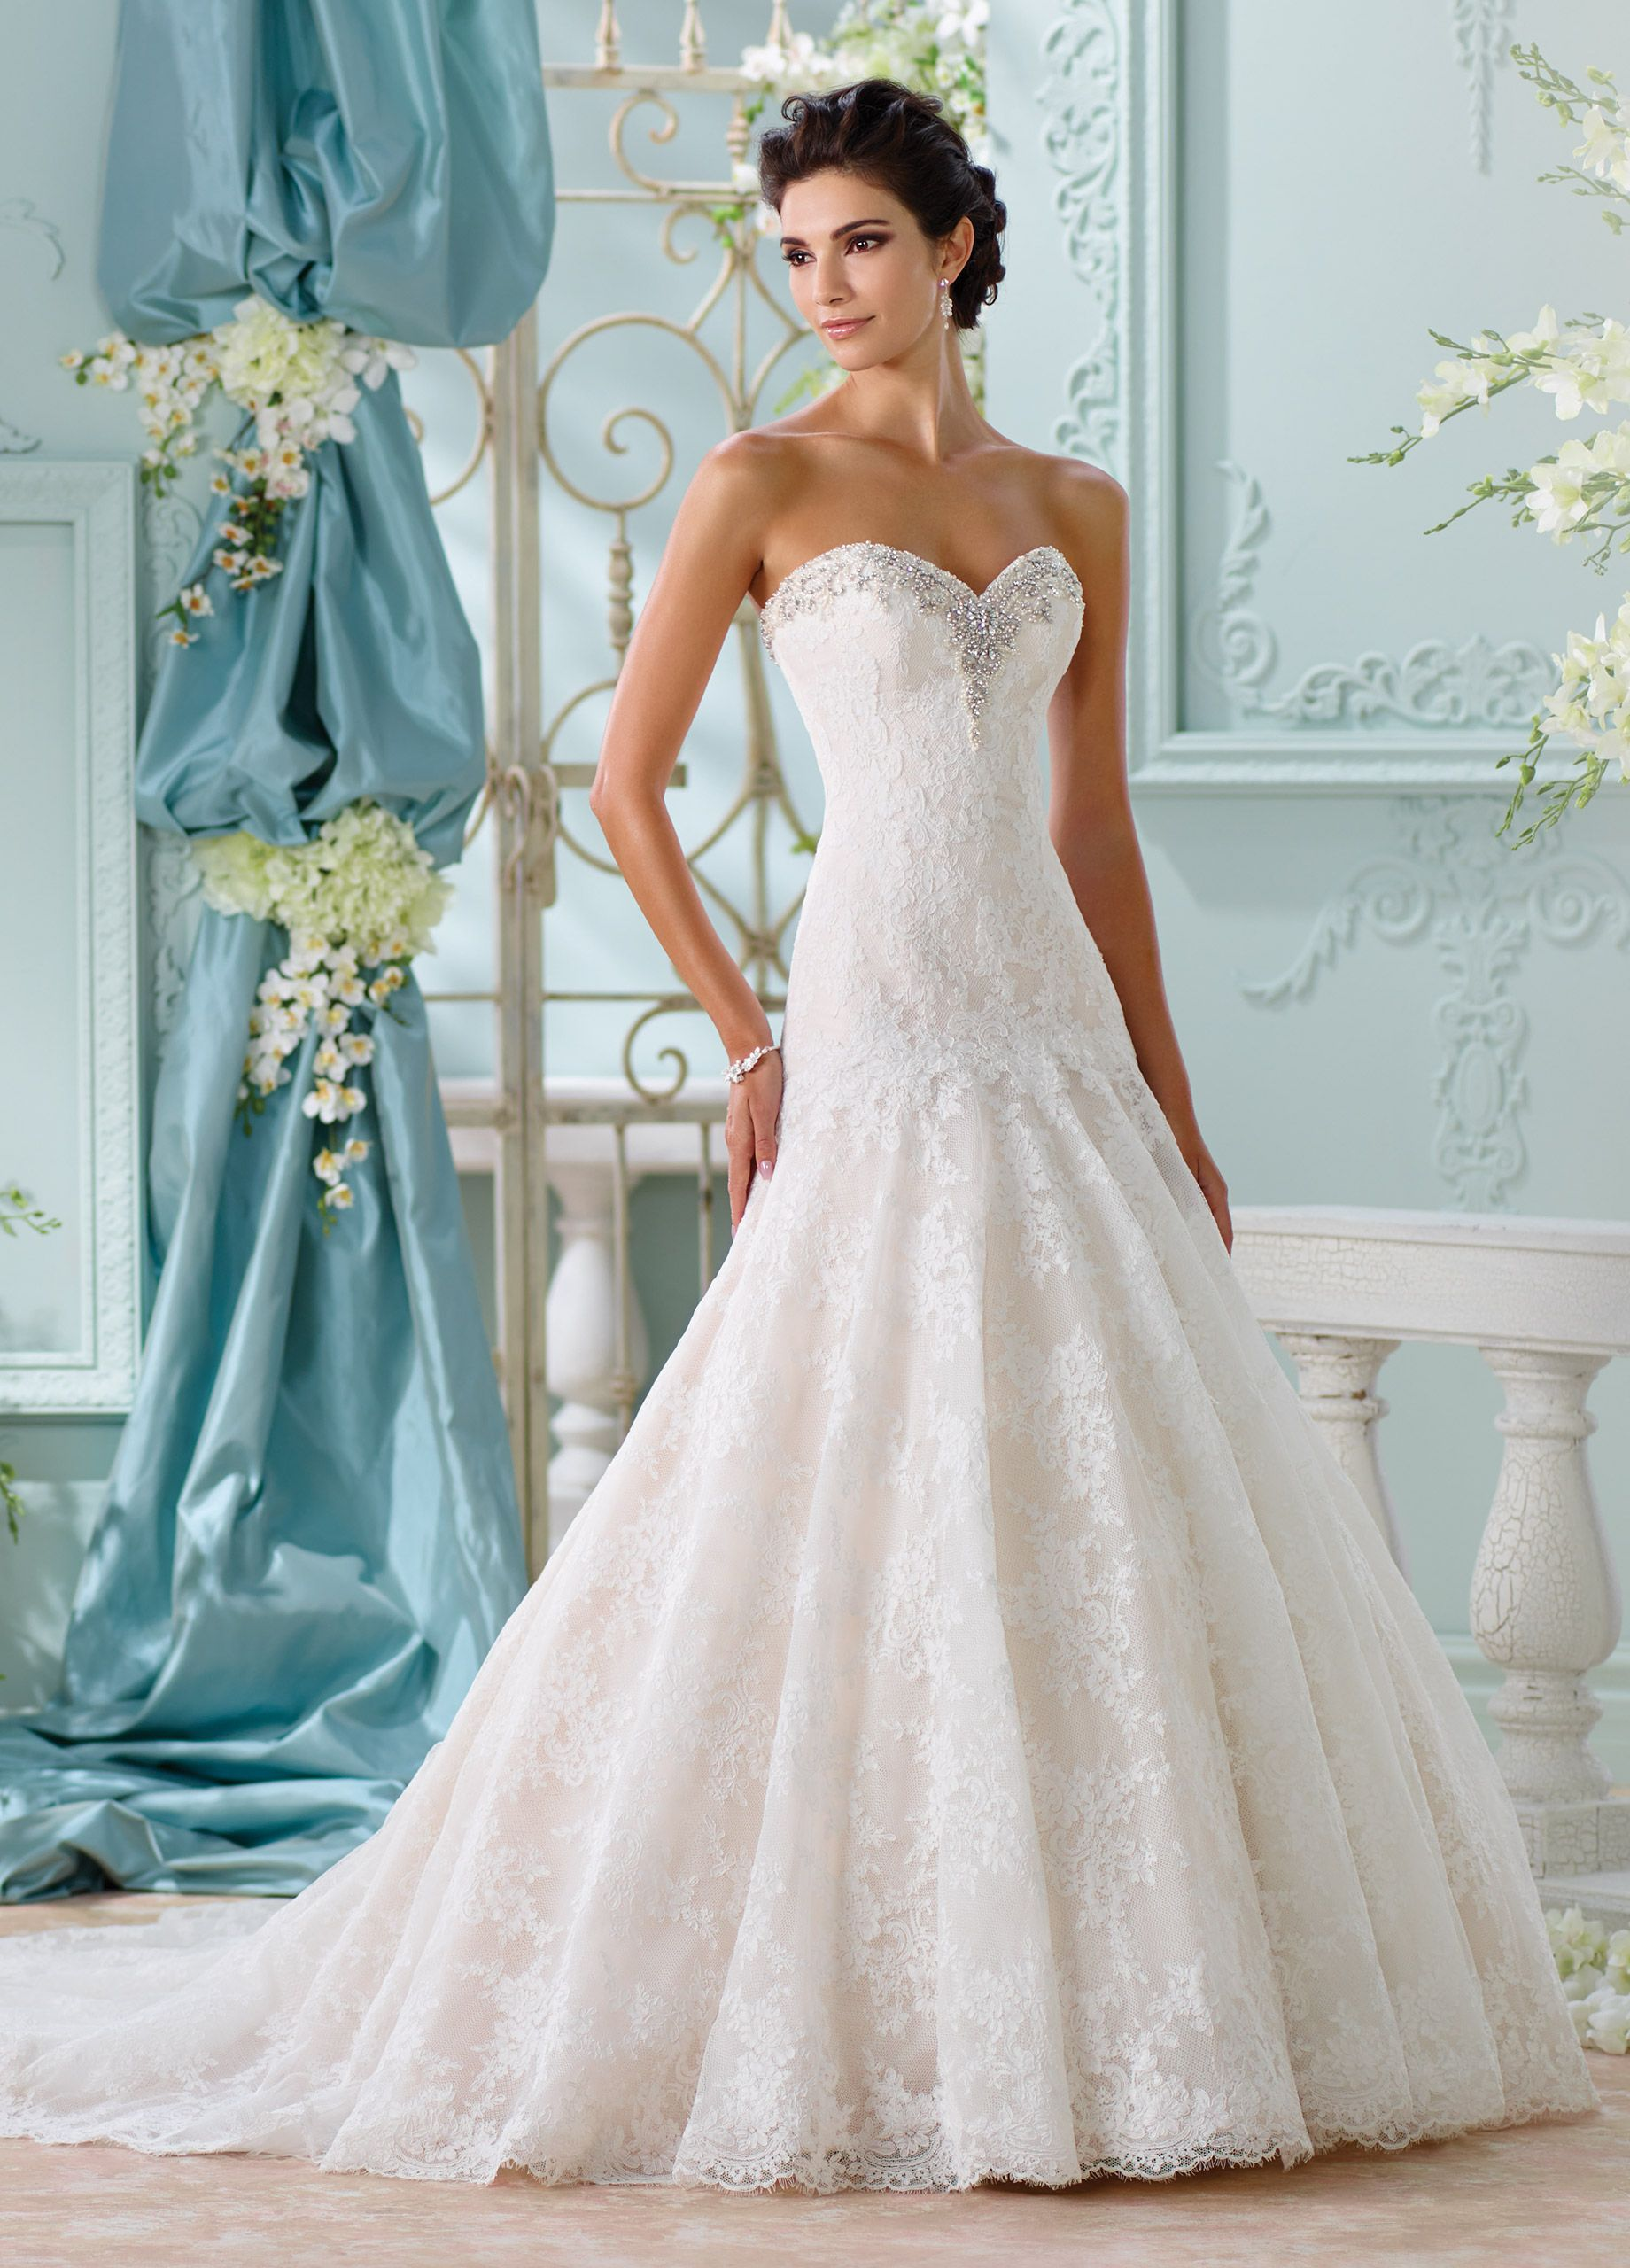 Allover Lace & Beaded A-Line Wedding Dress-116205 Chasca | Lace ...